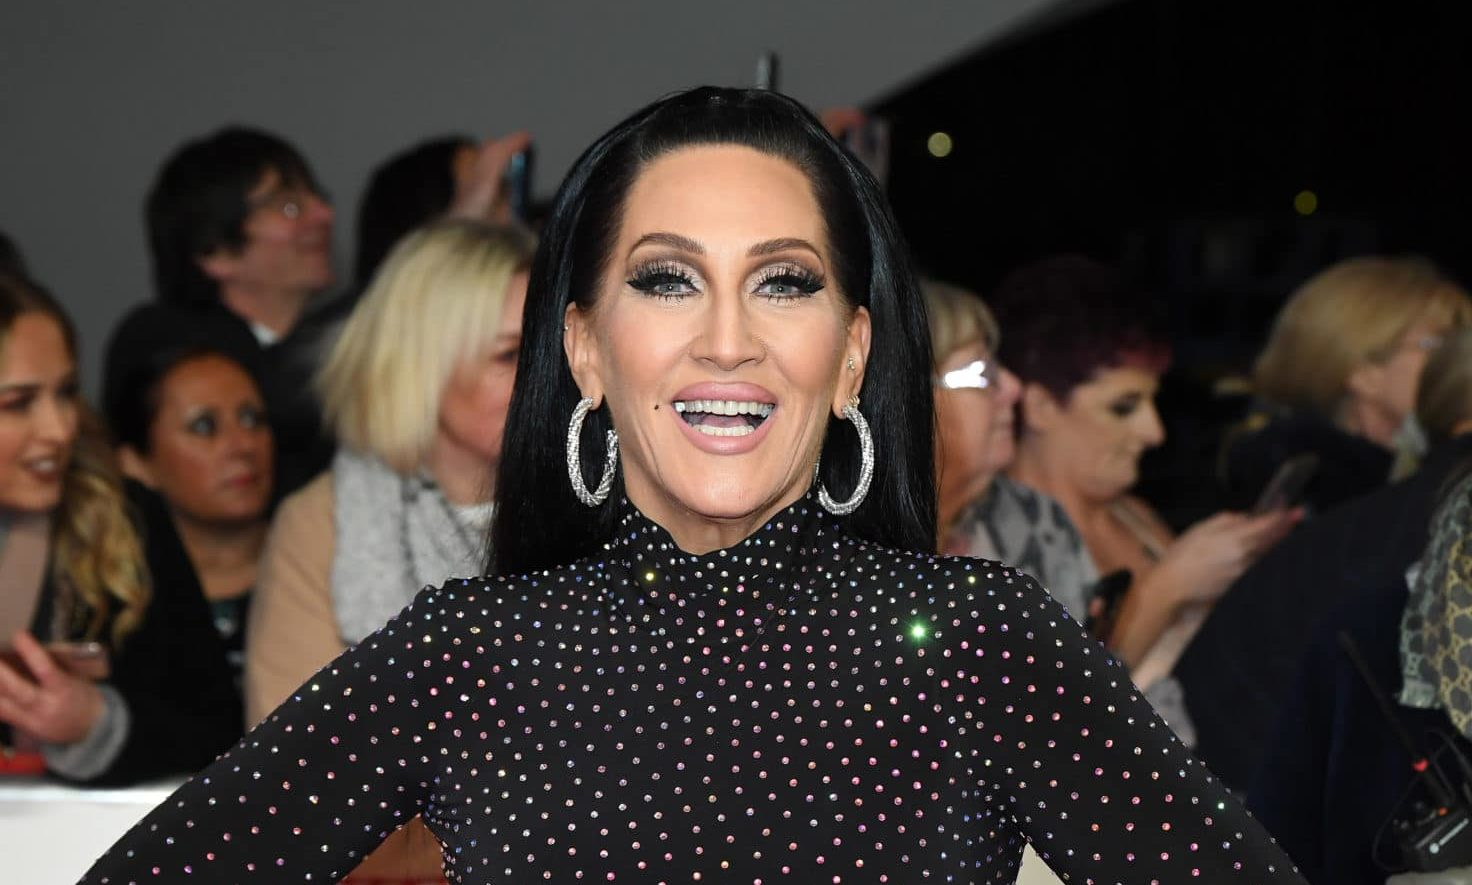 Michelle Visage made her debut on RuPaul's Drag Race in 2011 for season three.